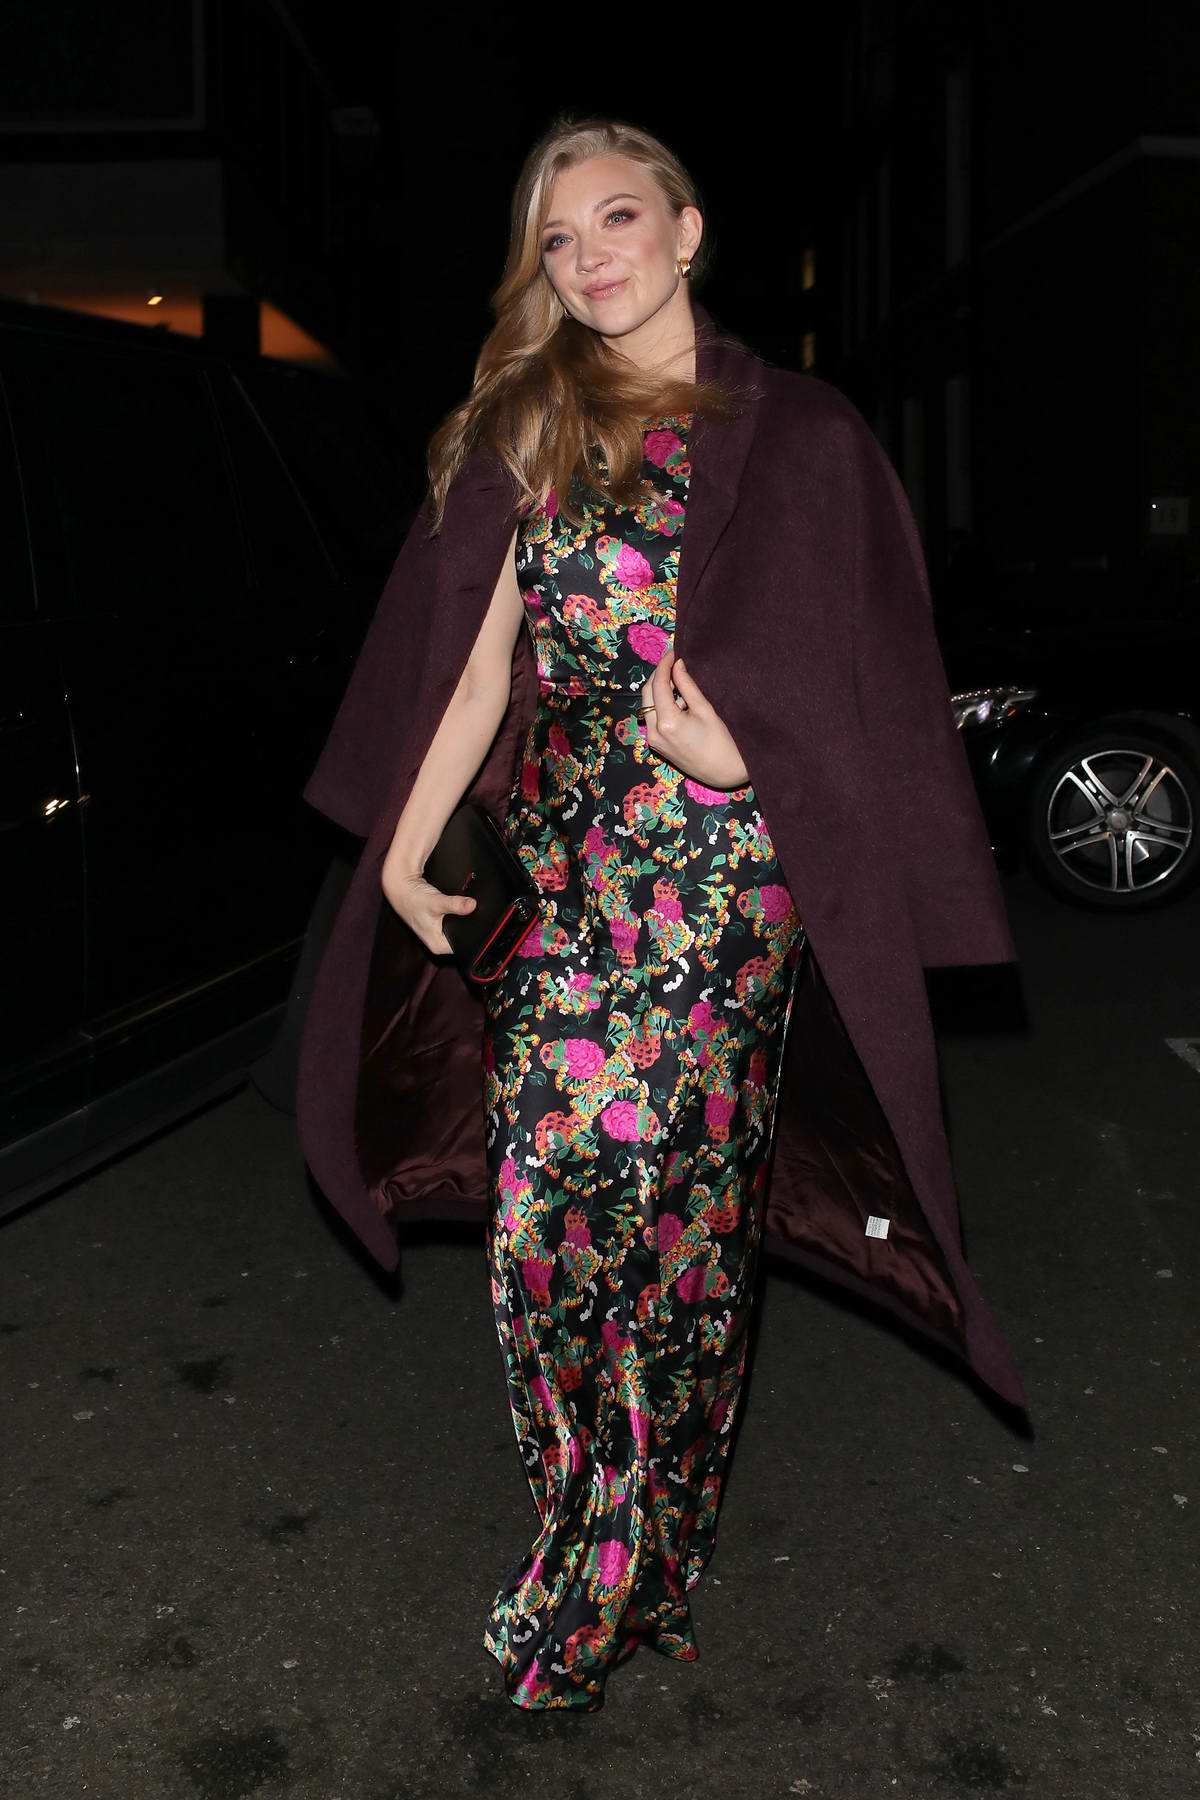 Natalie Dormer arrives at a Barbara Broccoli pre BAFTA party at Spencer House in London, UK